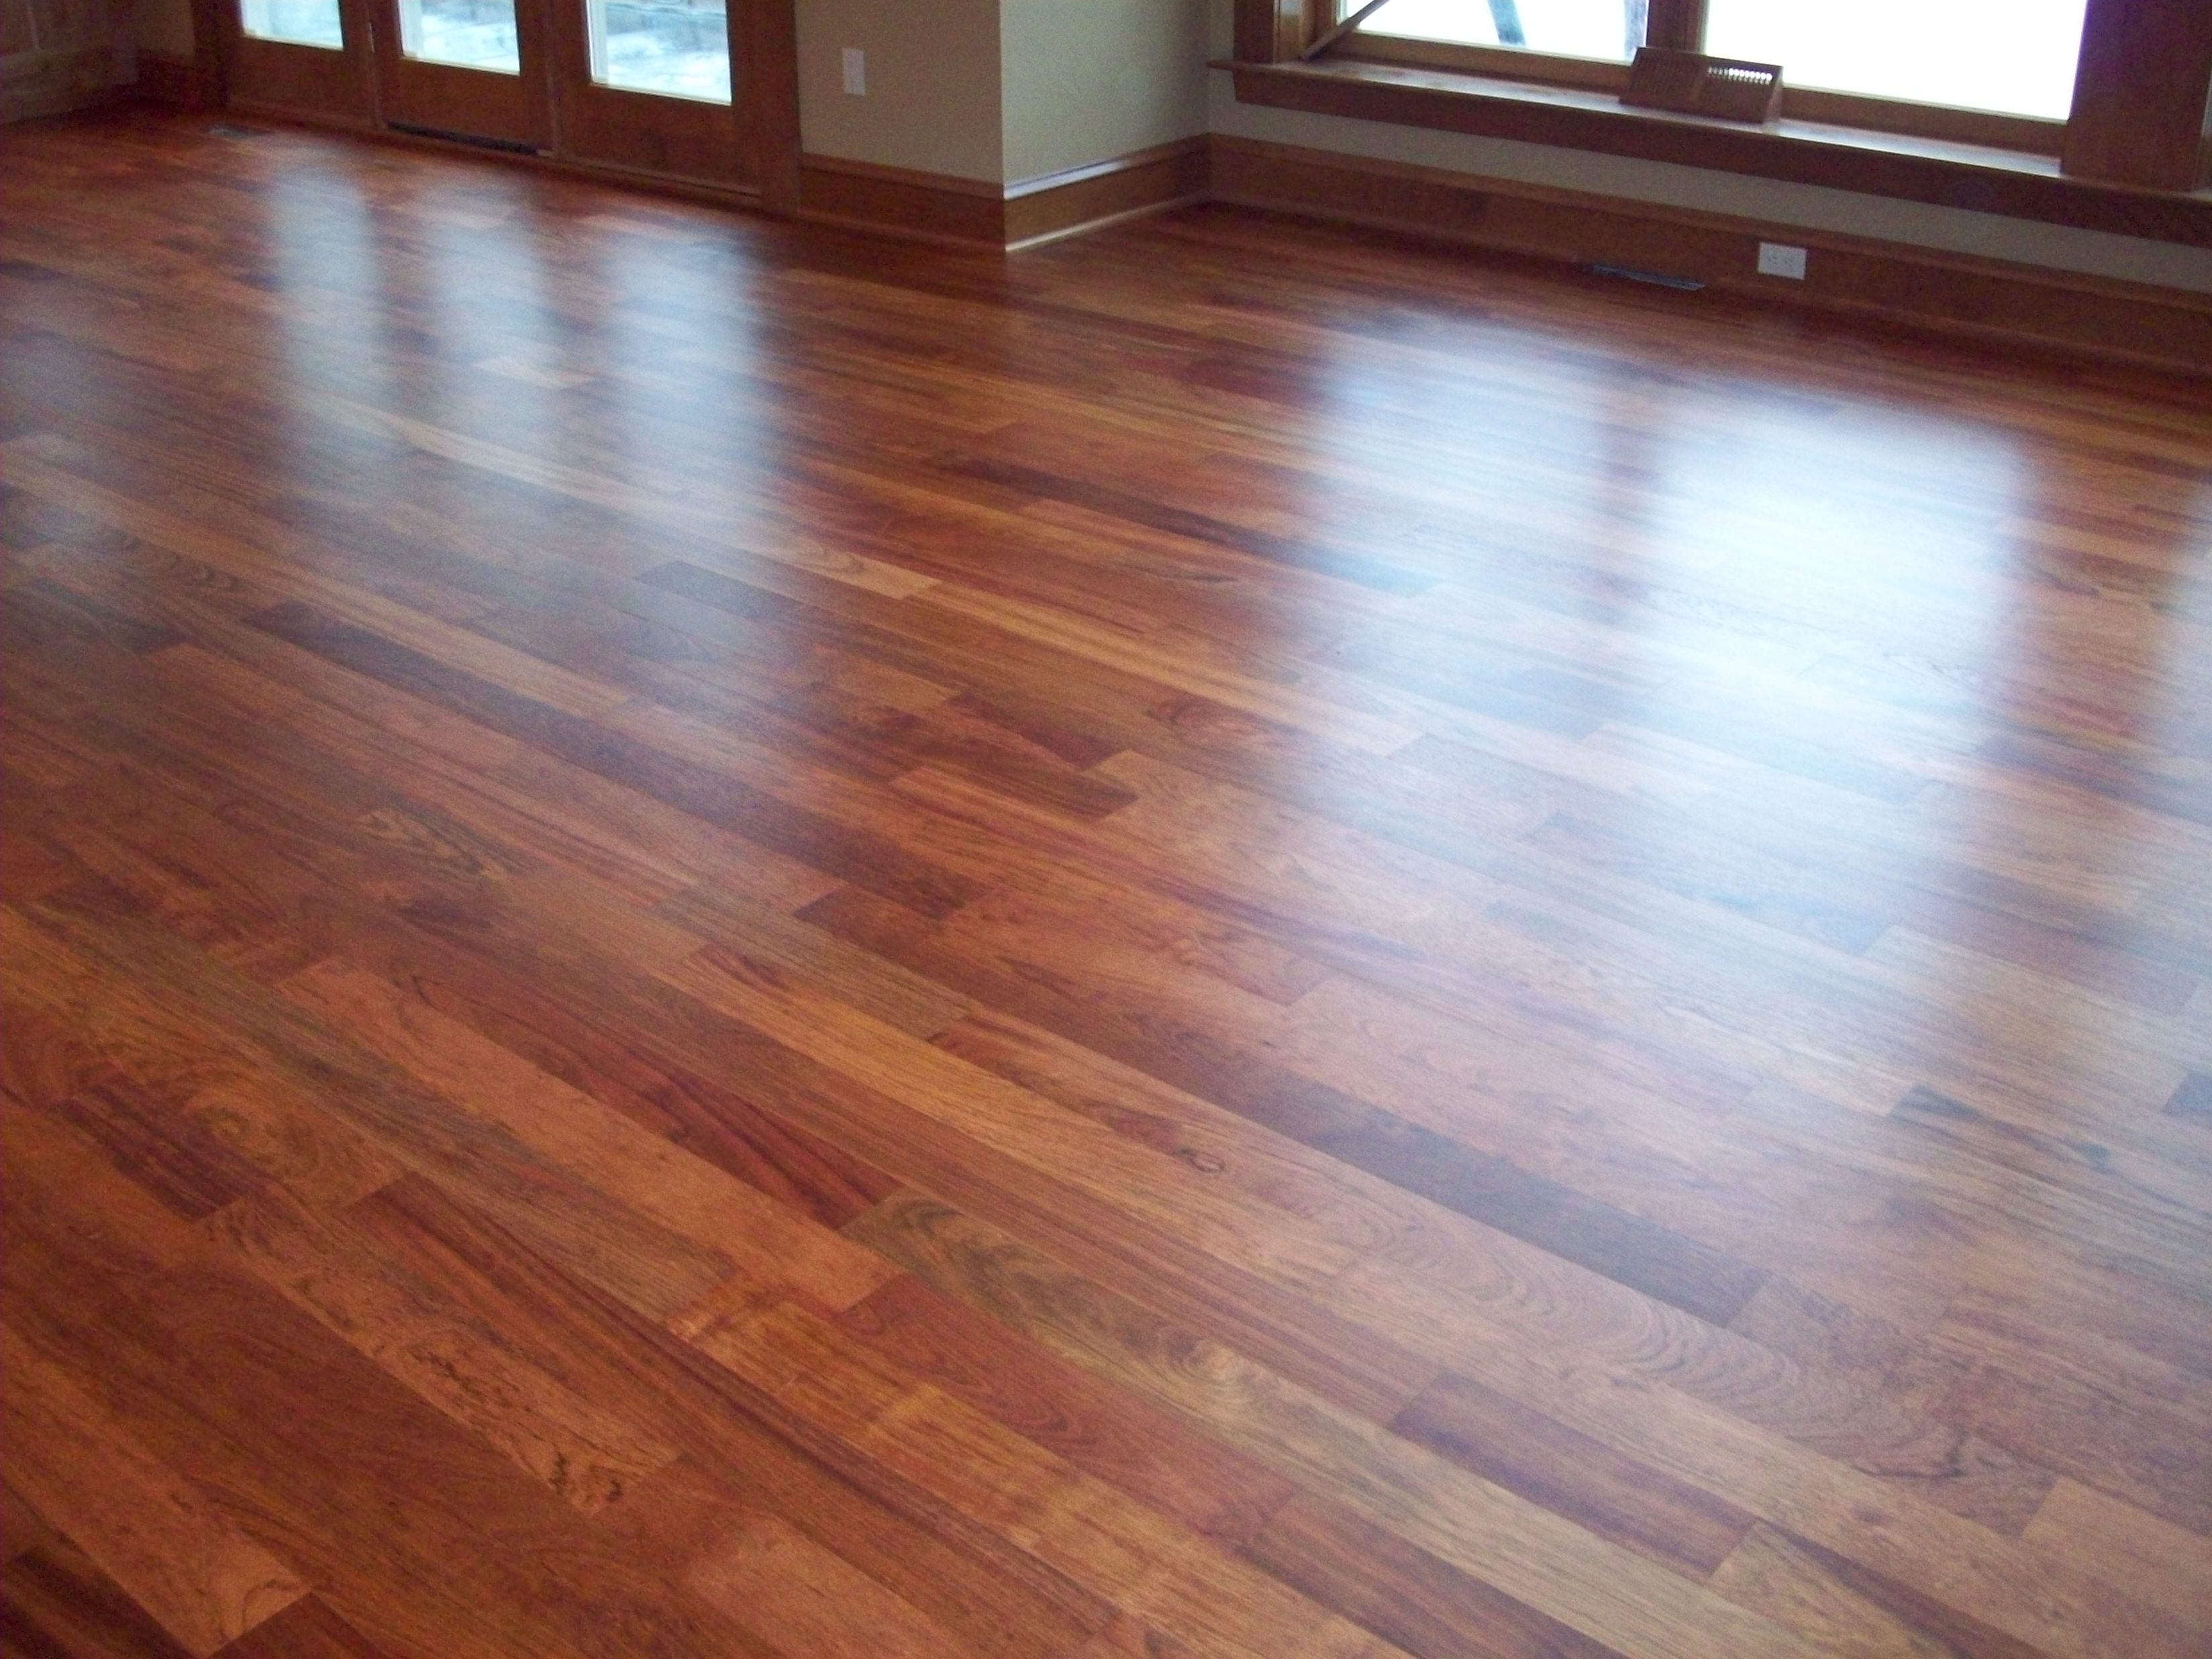 How To Care For Hardwood FloorsPeachesN Clean